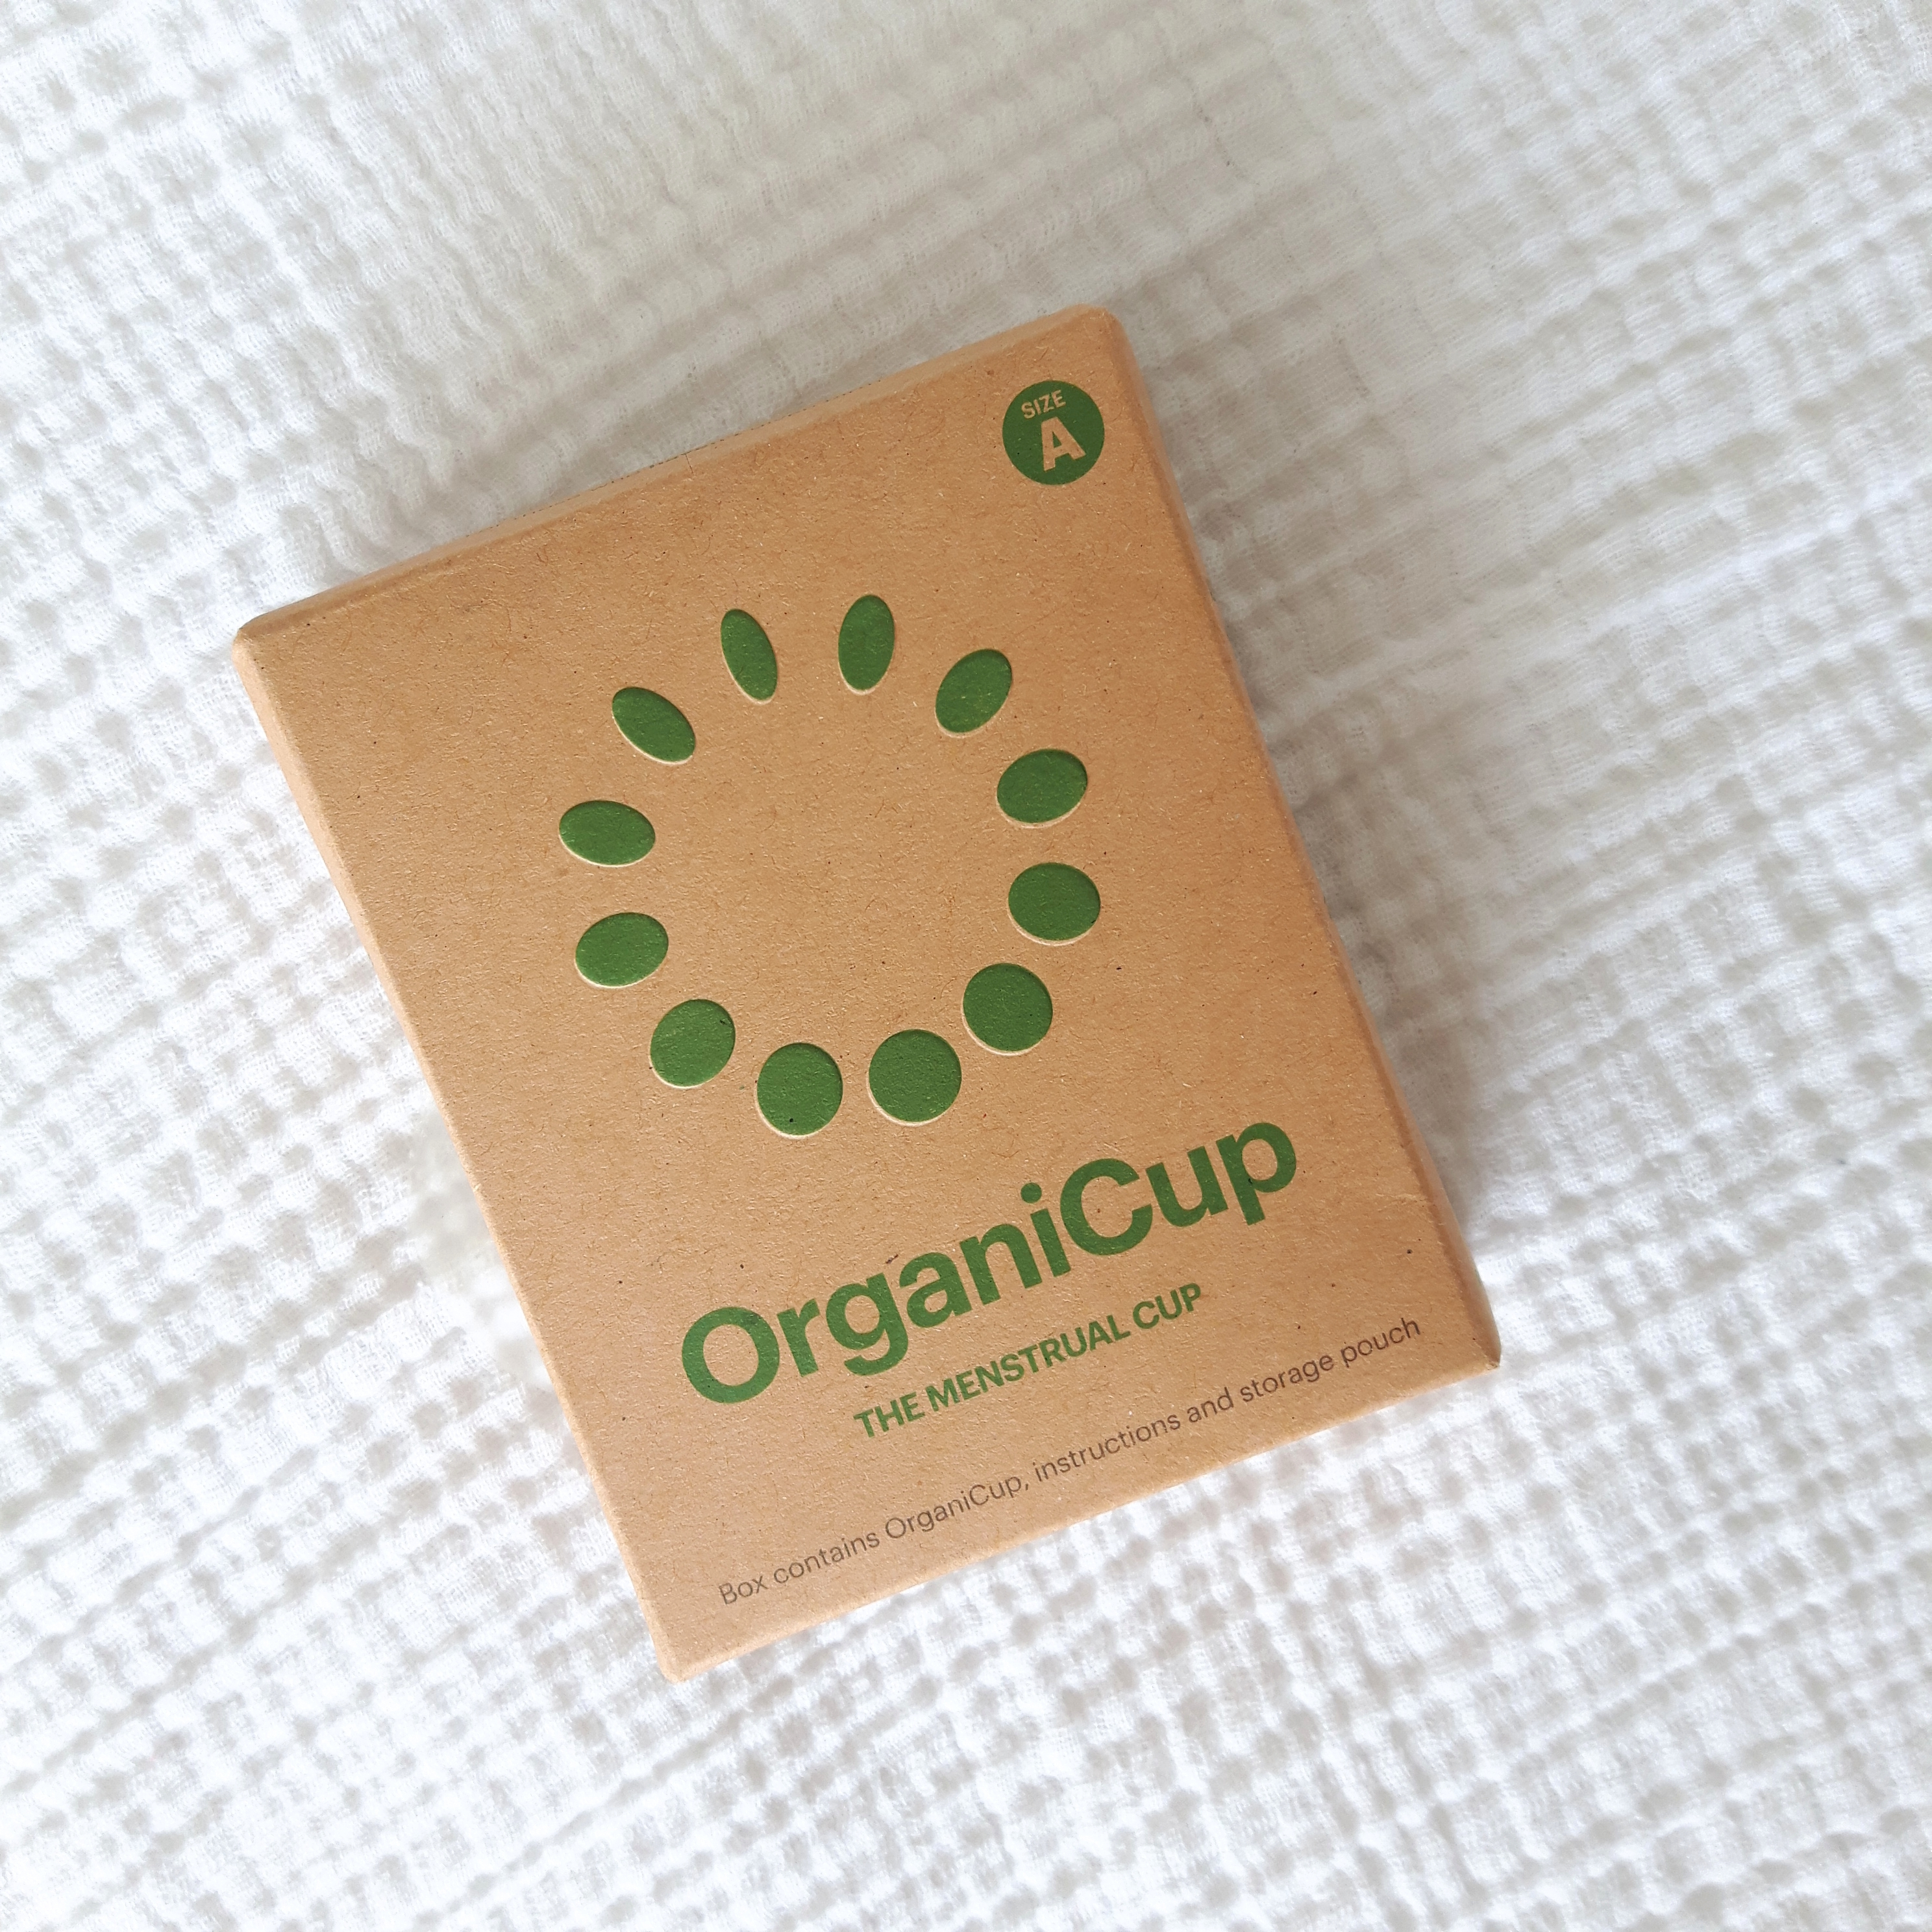 https://talilifestyle.com/2019/04/22/organicup,-a-review/